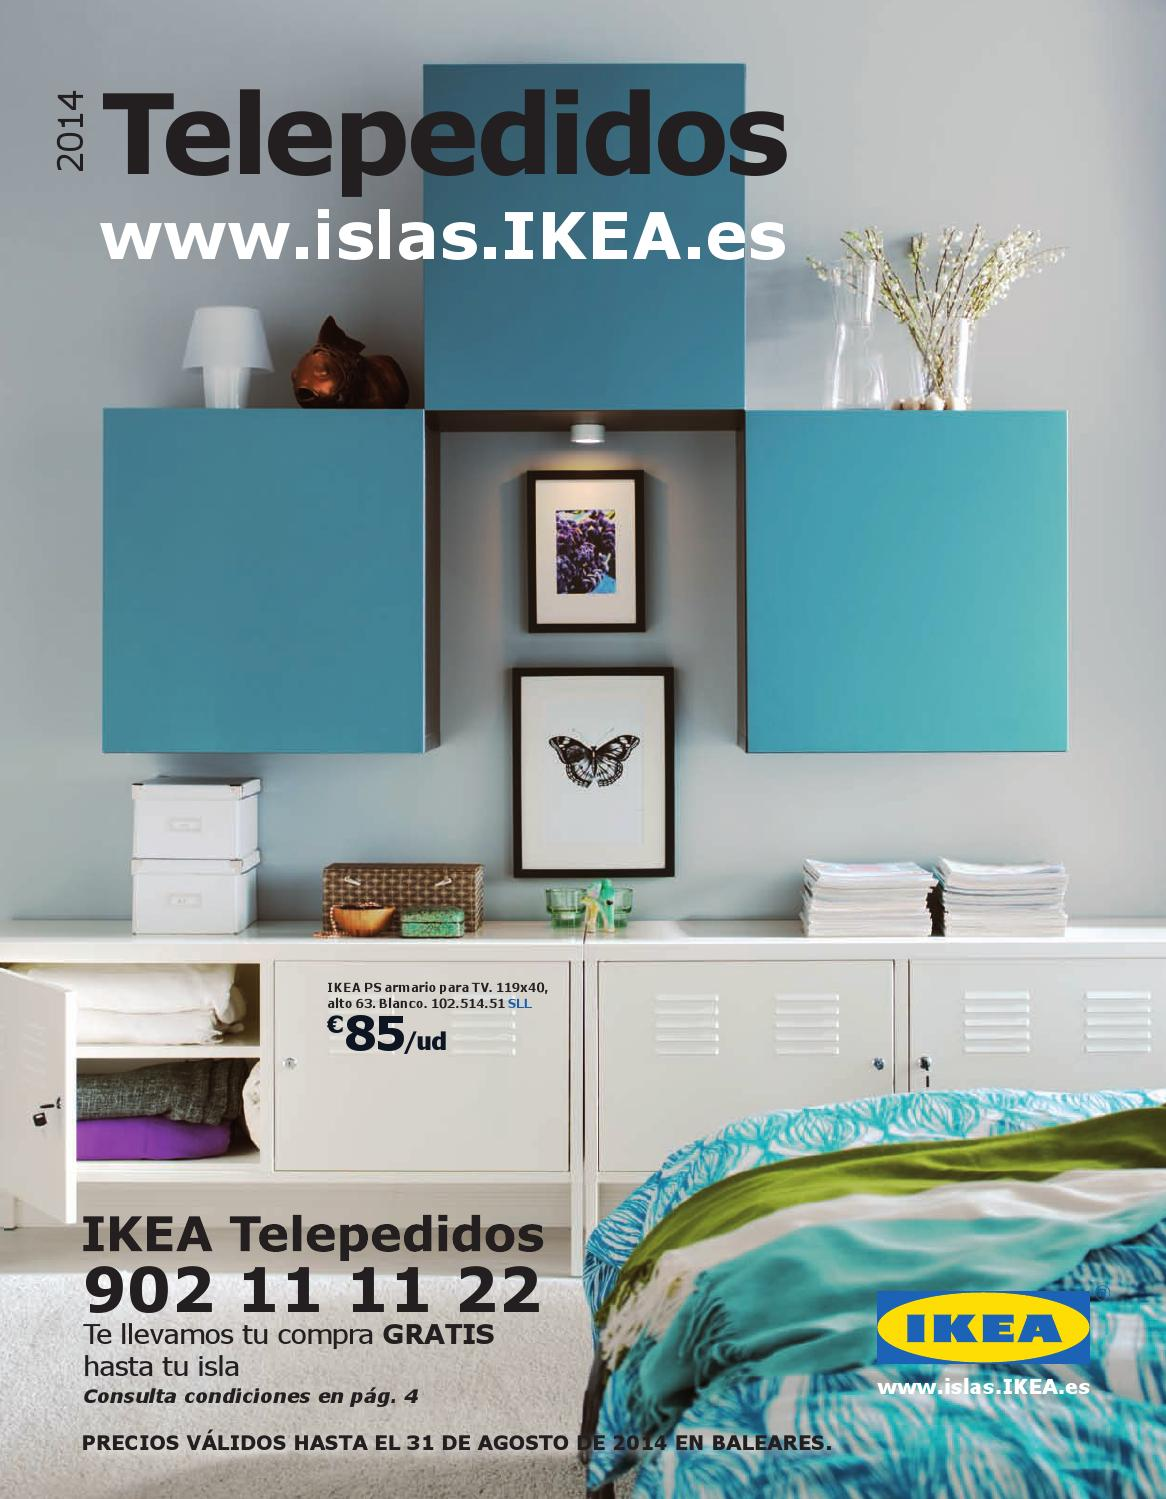 Catalogo ikea telepedidos 2014 baleares by losdescuentos - issuu